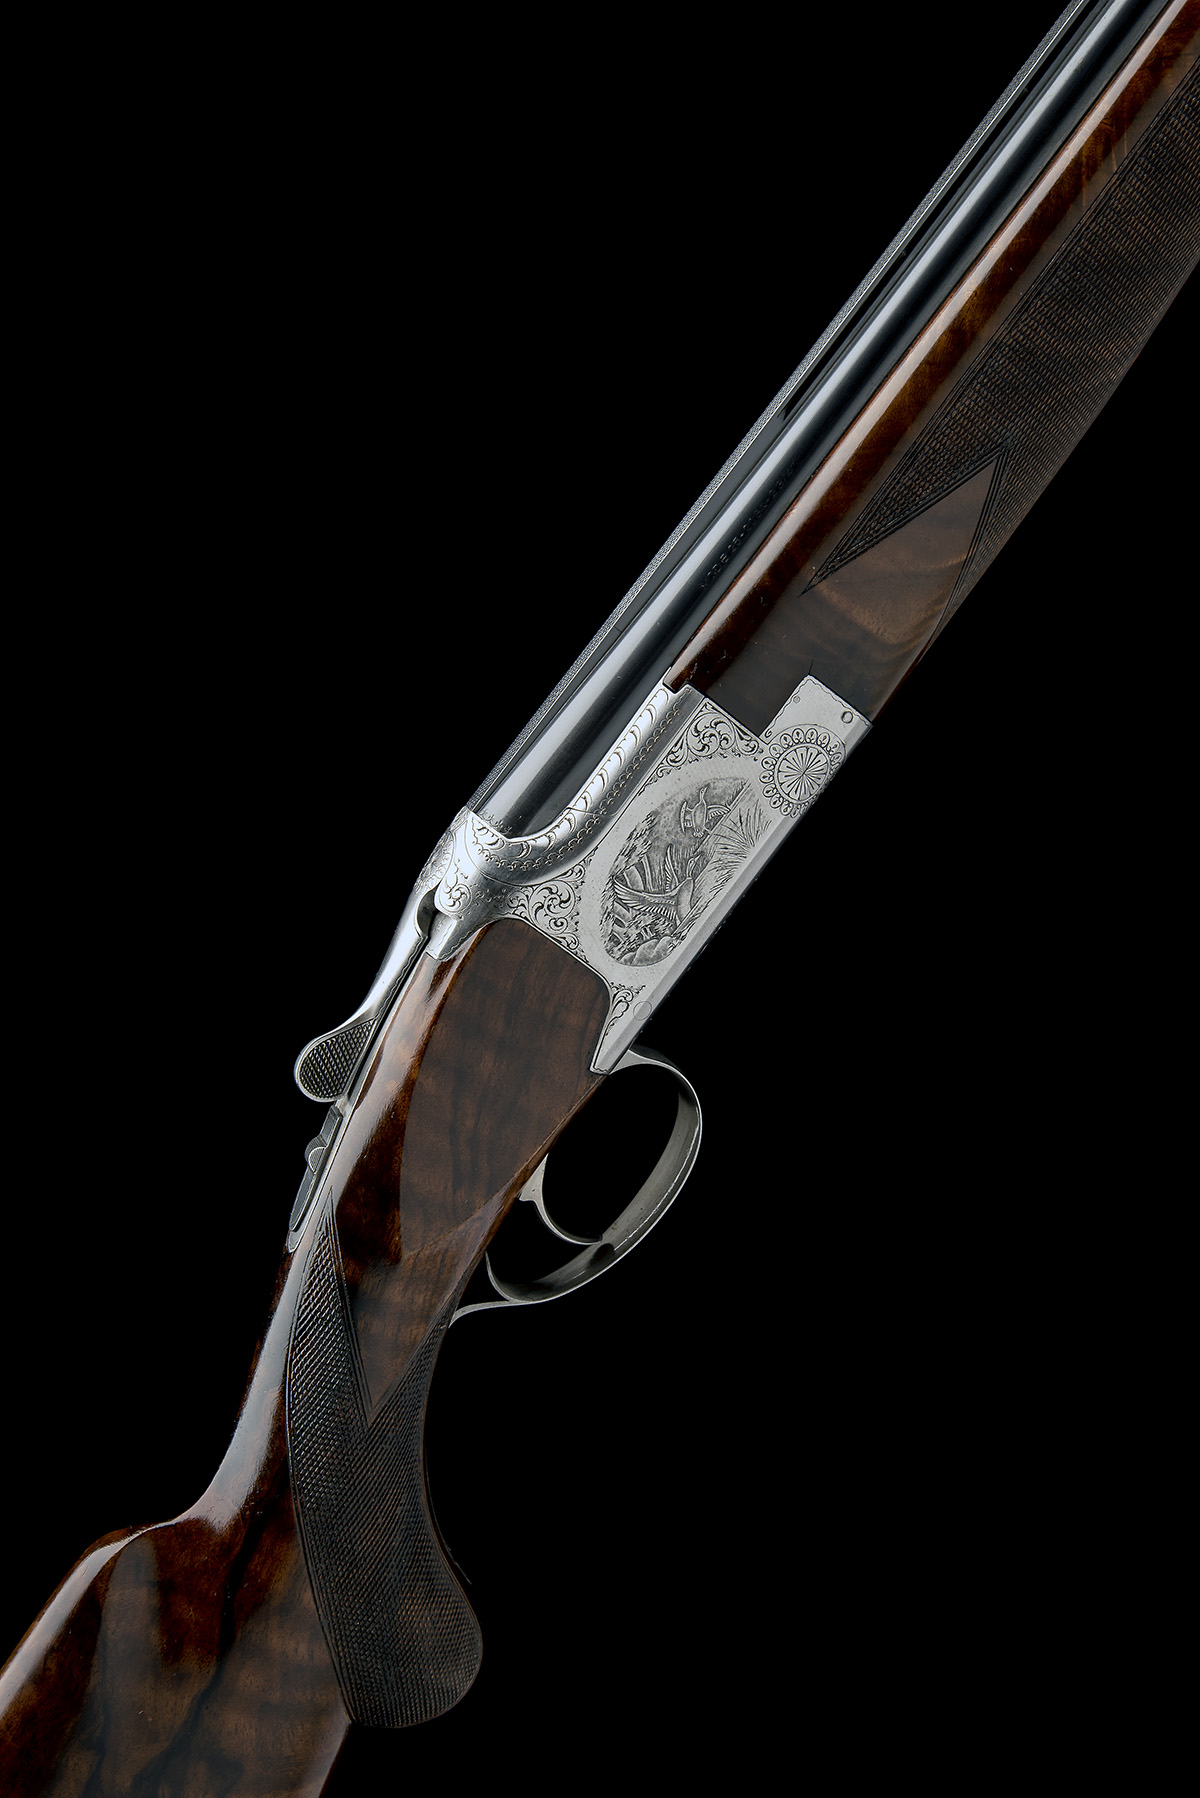 BROWNING ARMS COMPANY A PERFIDO-ENGRAVED 20-BORE 'MOD. B2G' SINGLE-TRIGGER OVER AND UNDER EJECTOR,